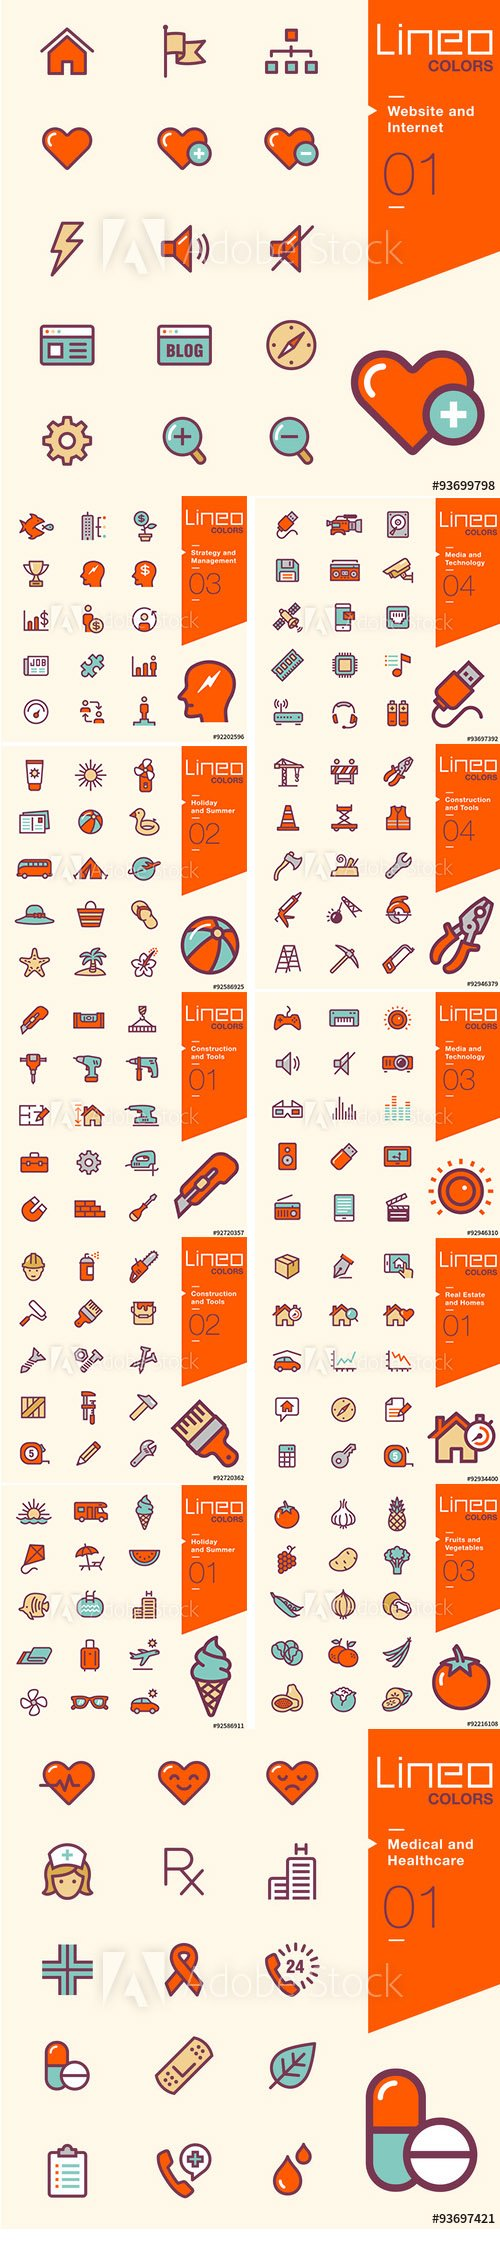 Lineo Colors Icons Pack Vol 3